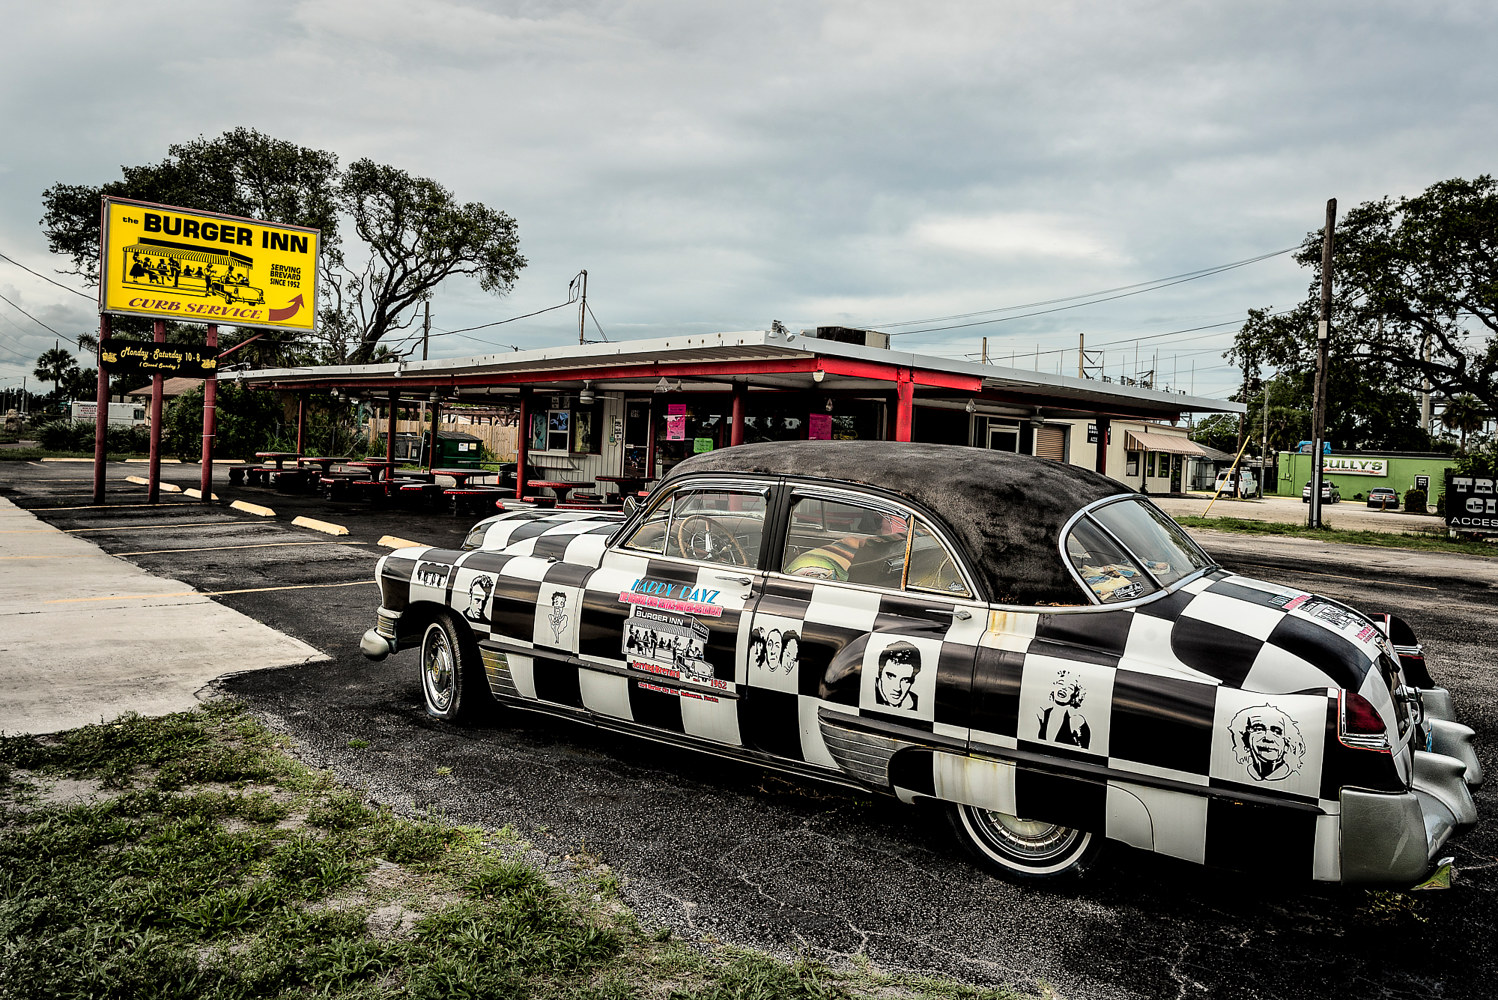 Burger Inn Cady Eau Gallie, Fl  (PL58_7445BWT) by Gary Jones